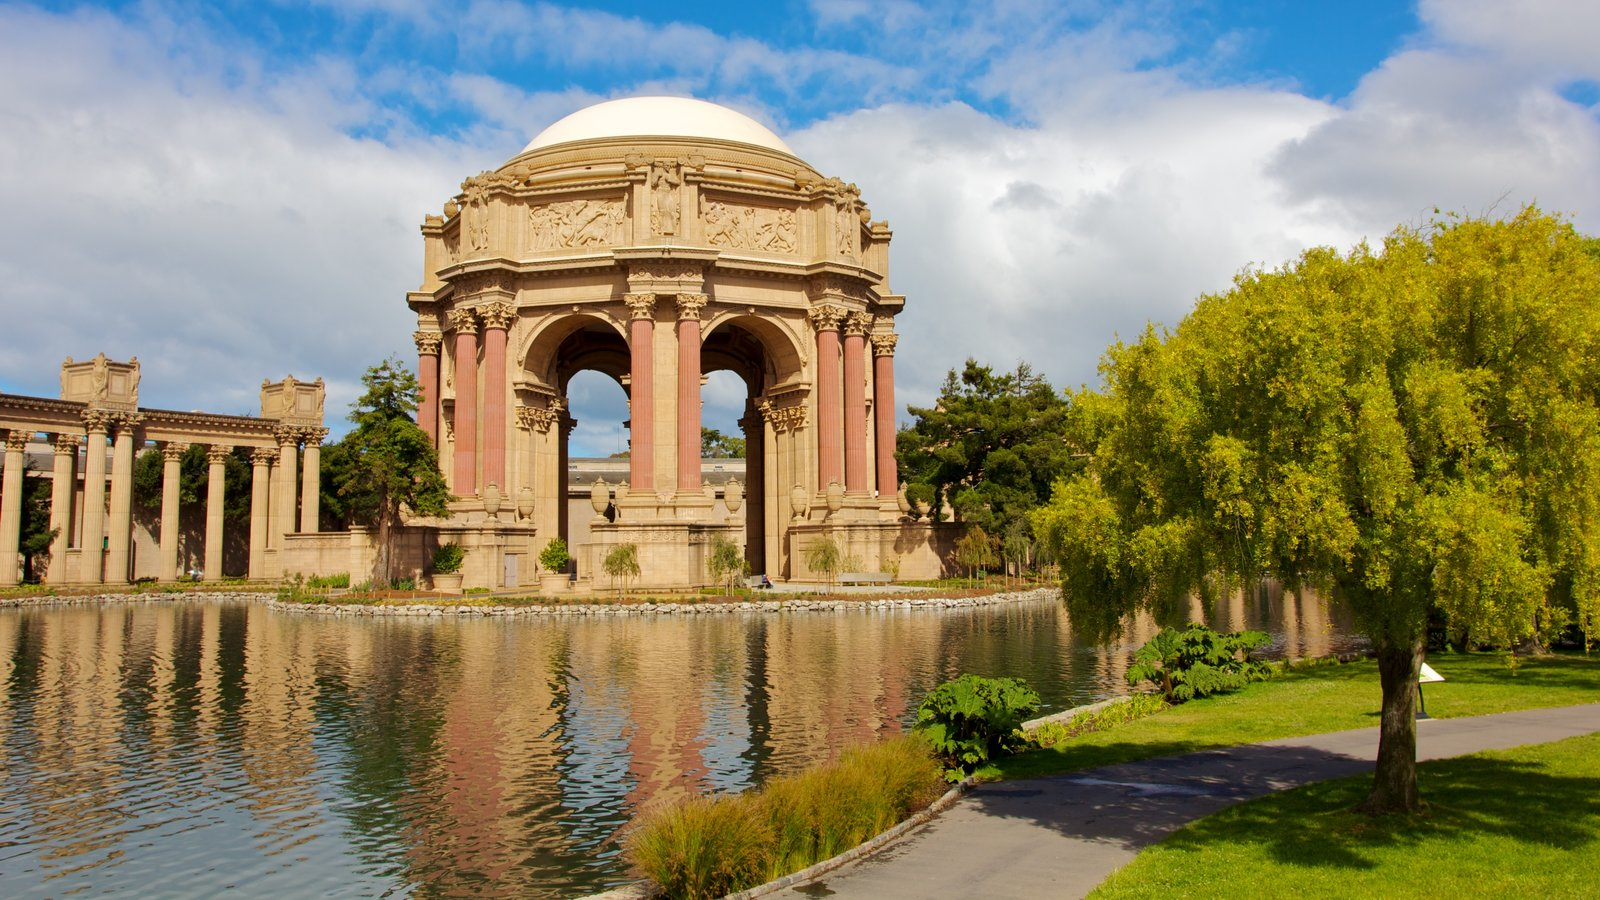 Palace of Fine Arts which includes a park, heritage architecture and chateau or palace